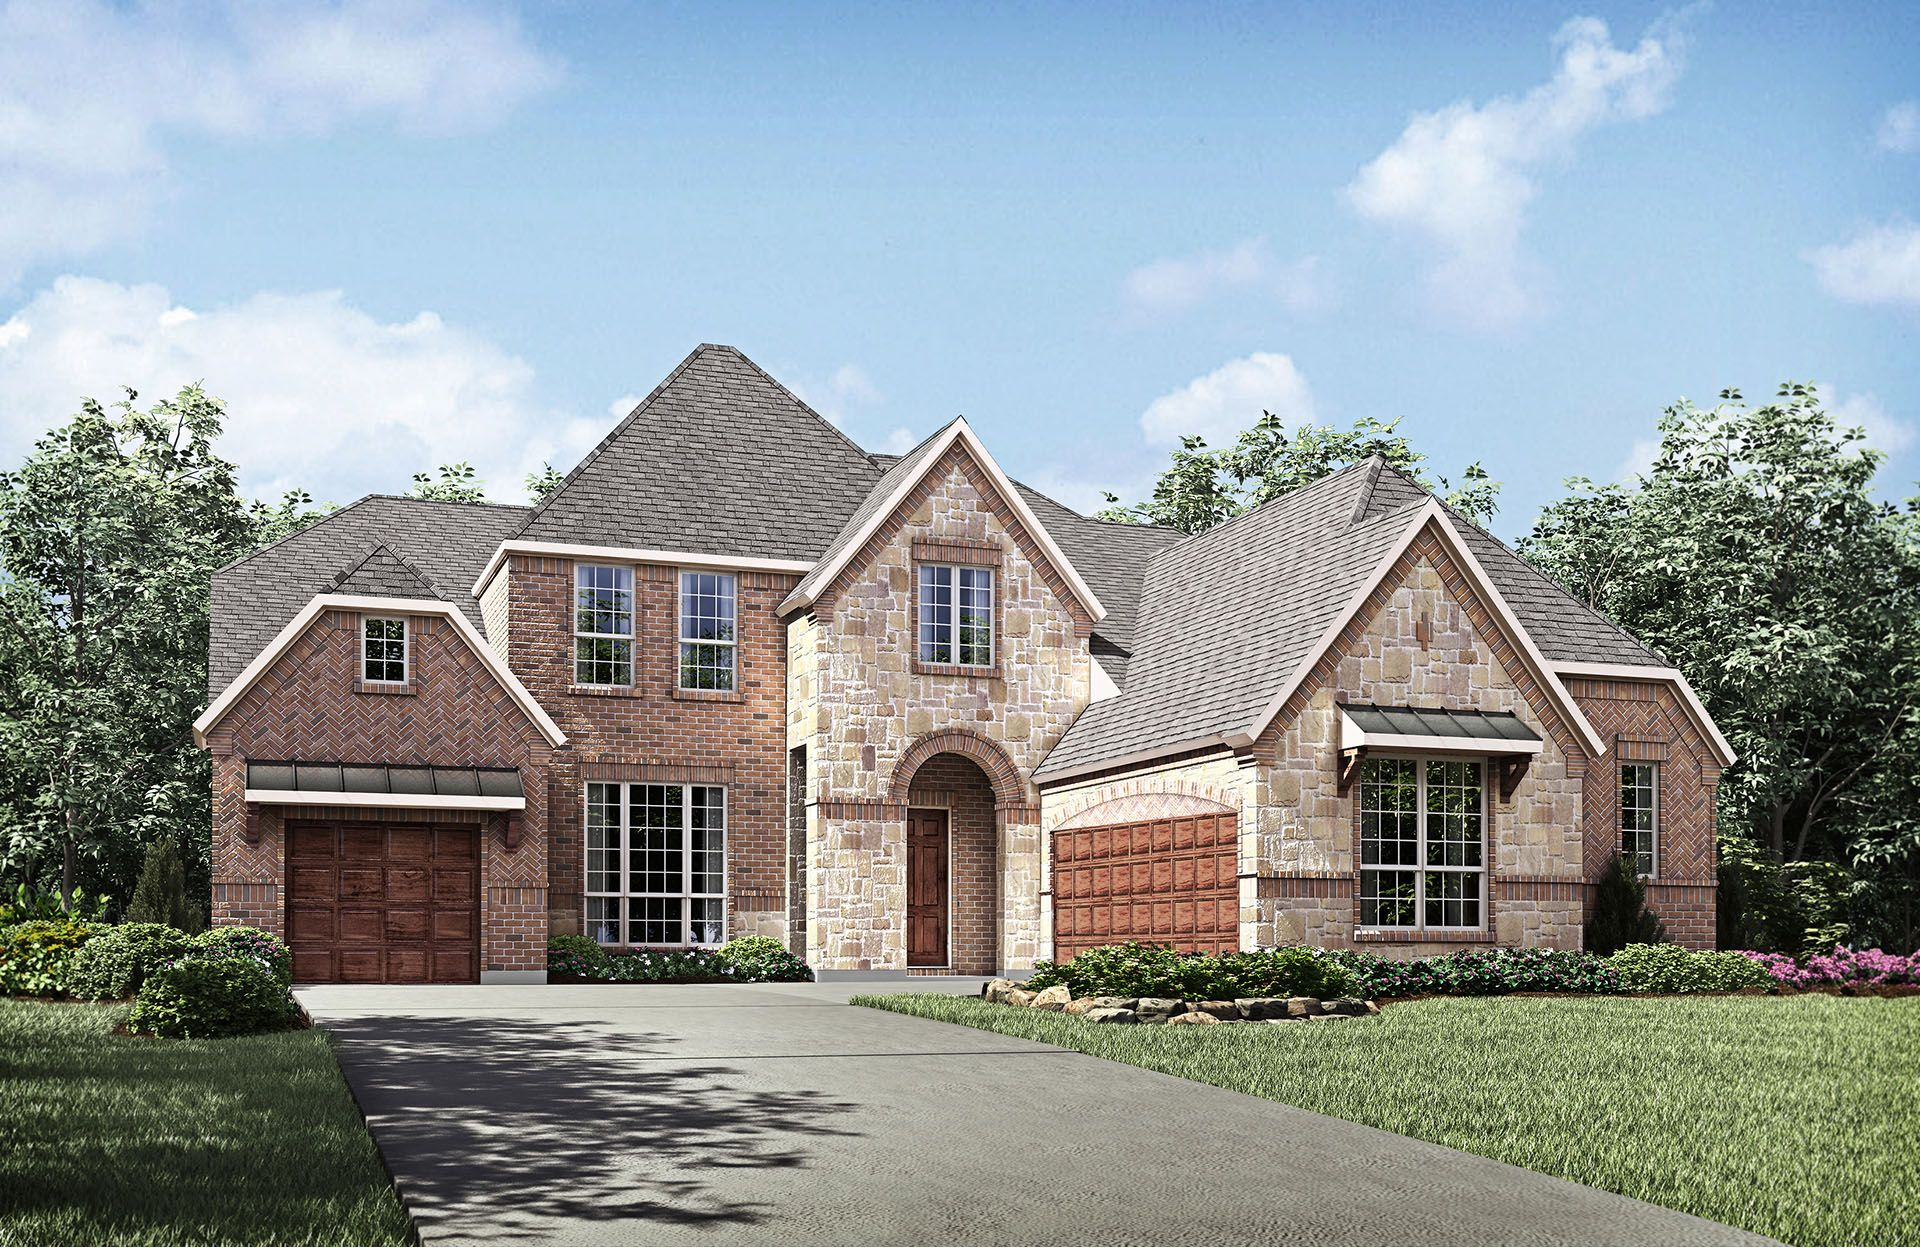 Single Family for Active at Harper's Preserve - Brinkley Model Home Coming Soon! Conroe, Texas 77385 United States